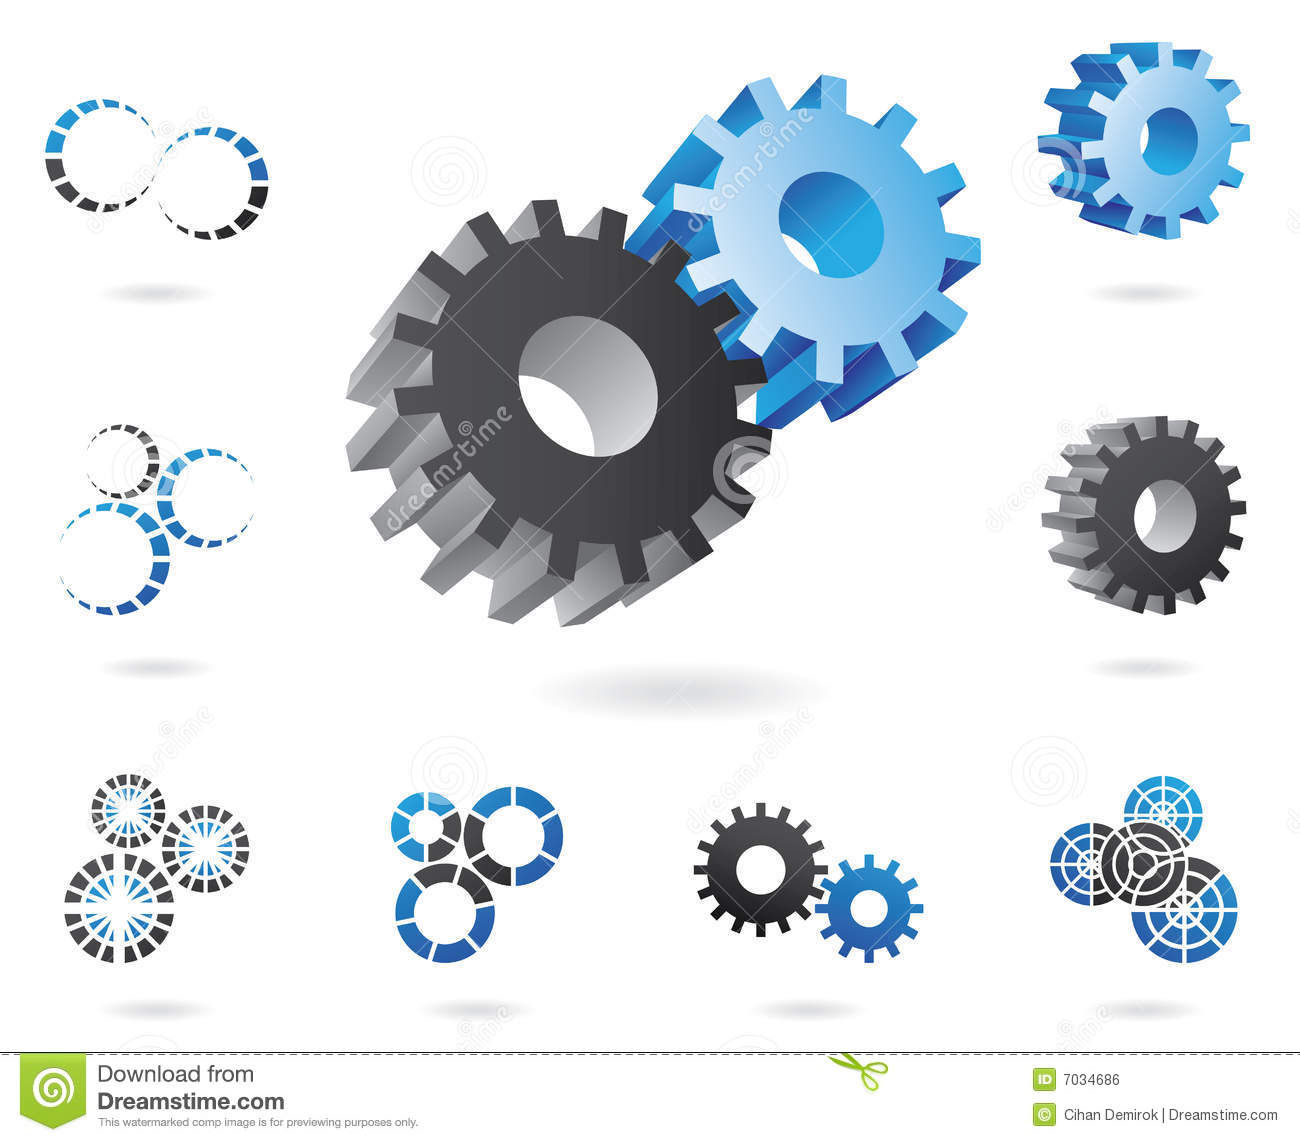 Shield design set royalty free stock photos image 5051988 - Shield Design Set 3d Cogs Royalty Free Stock Image